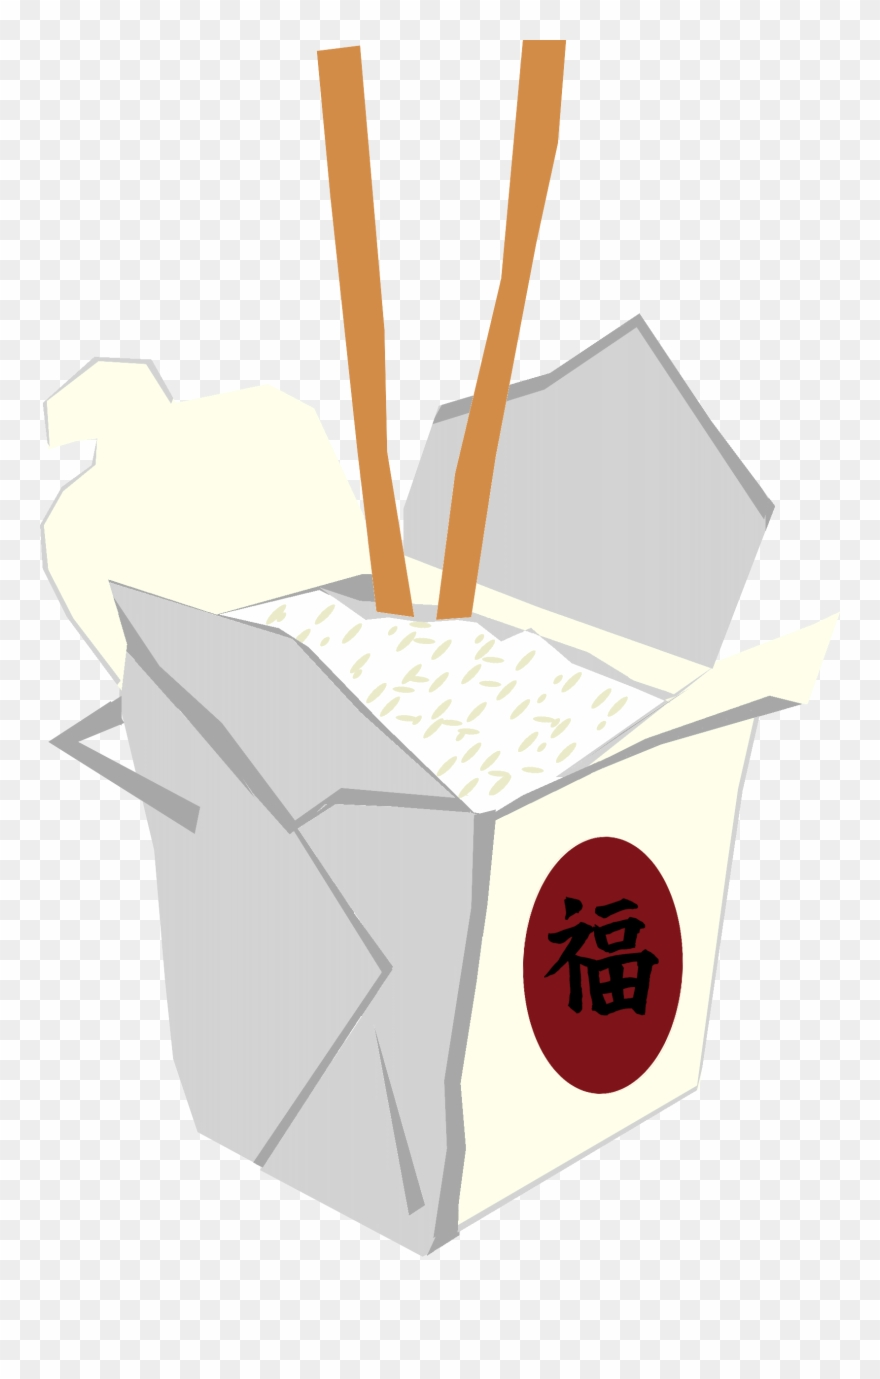 Takeout Box Clipart.